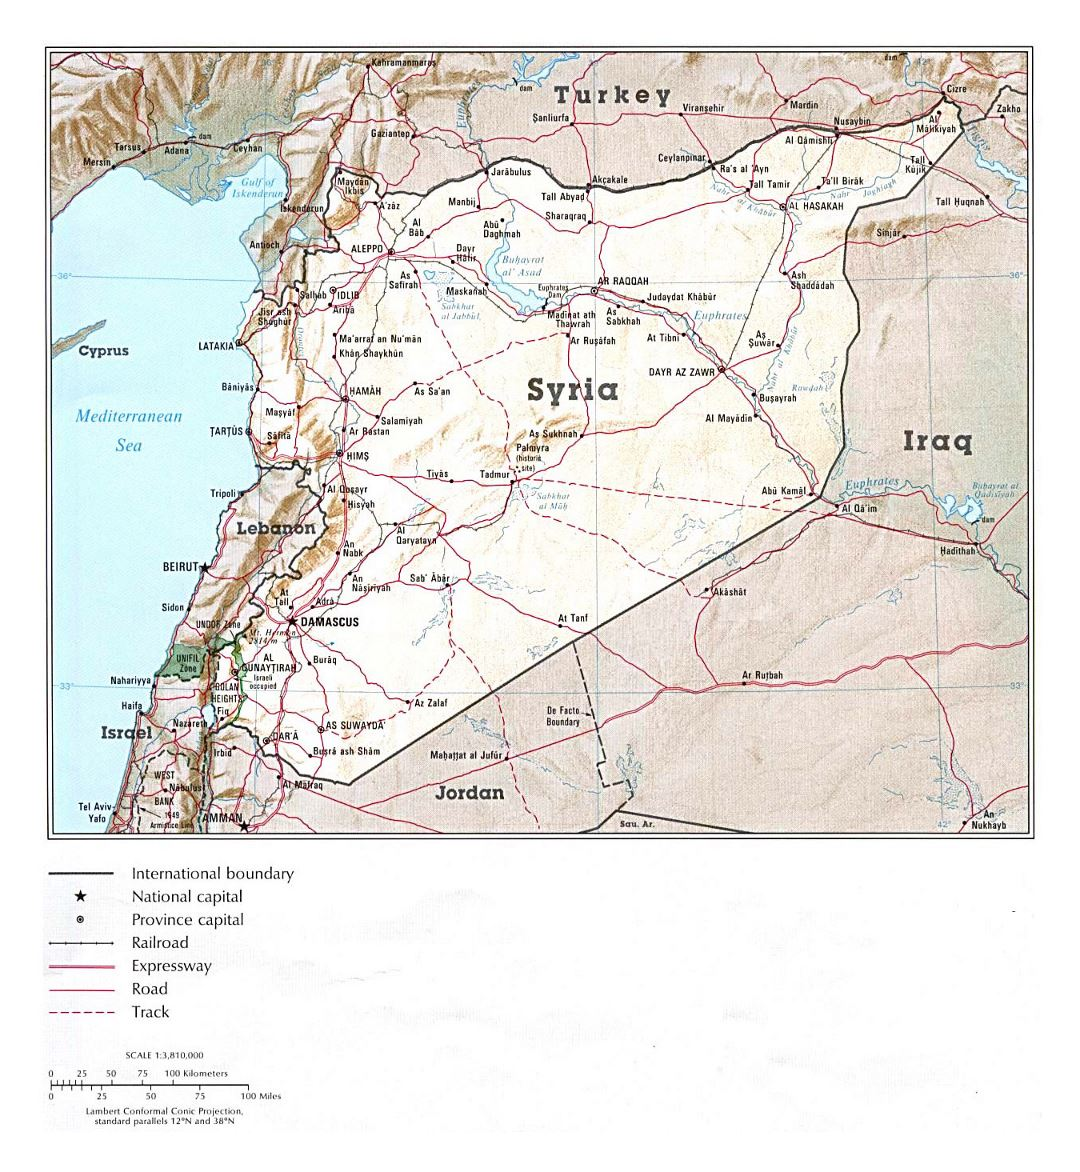 Detailed political map of Syria with relief, roads, railroads and major cities - 1993